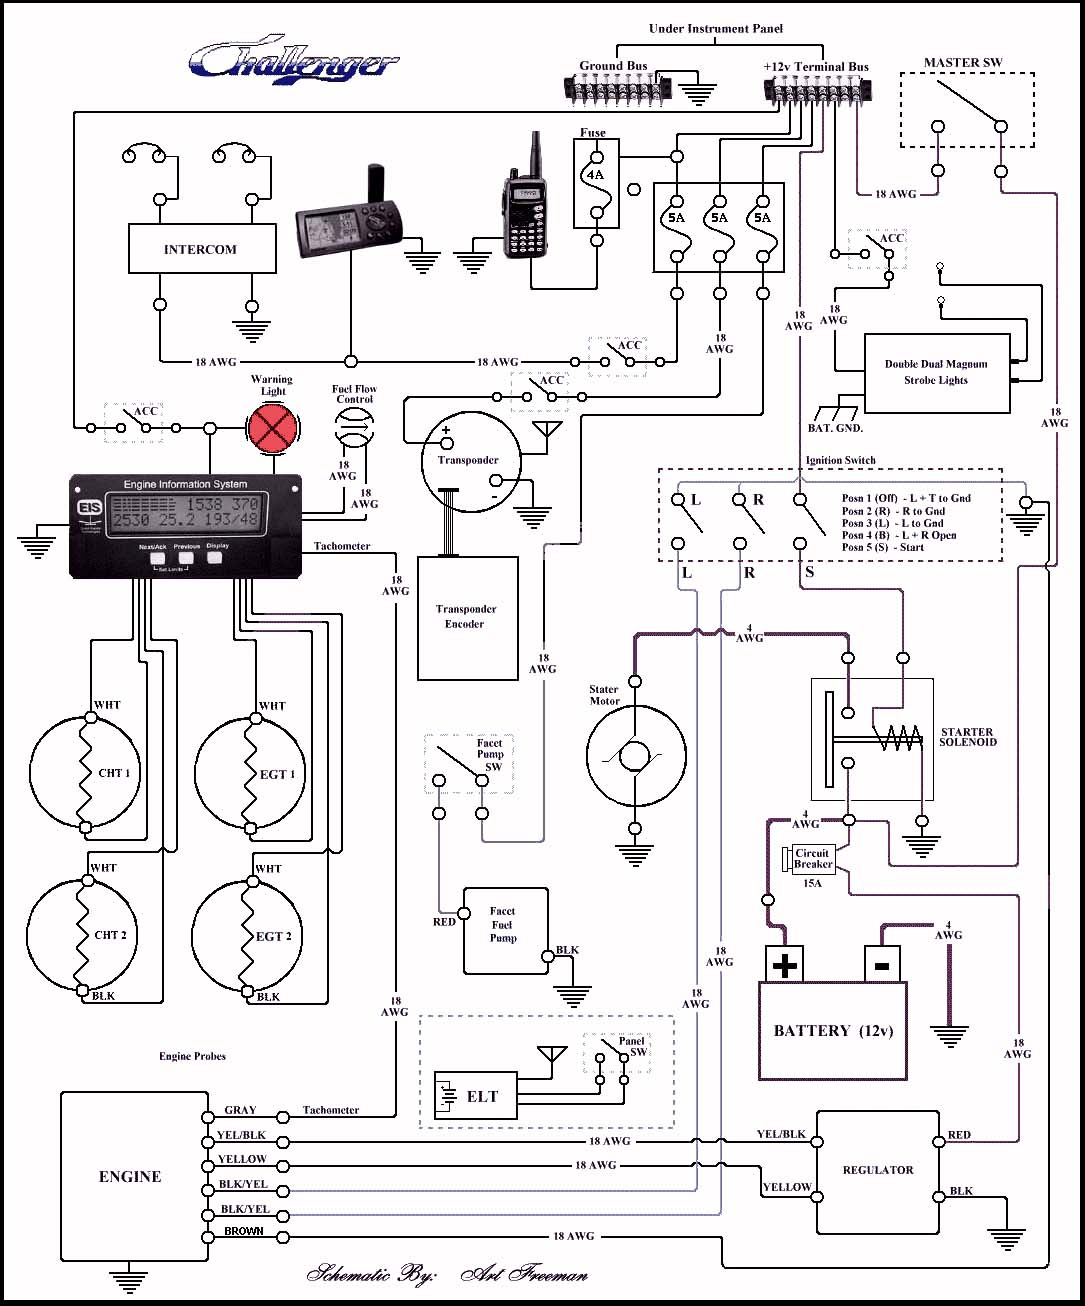 Schem_Digital basic wiring of fuselage, instruments and power source magnum light tower wiring diagram at creativeand.co